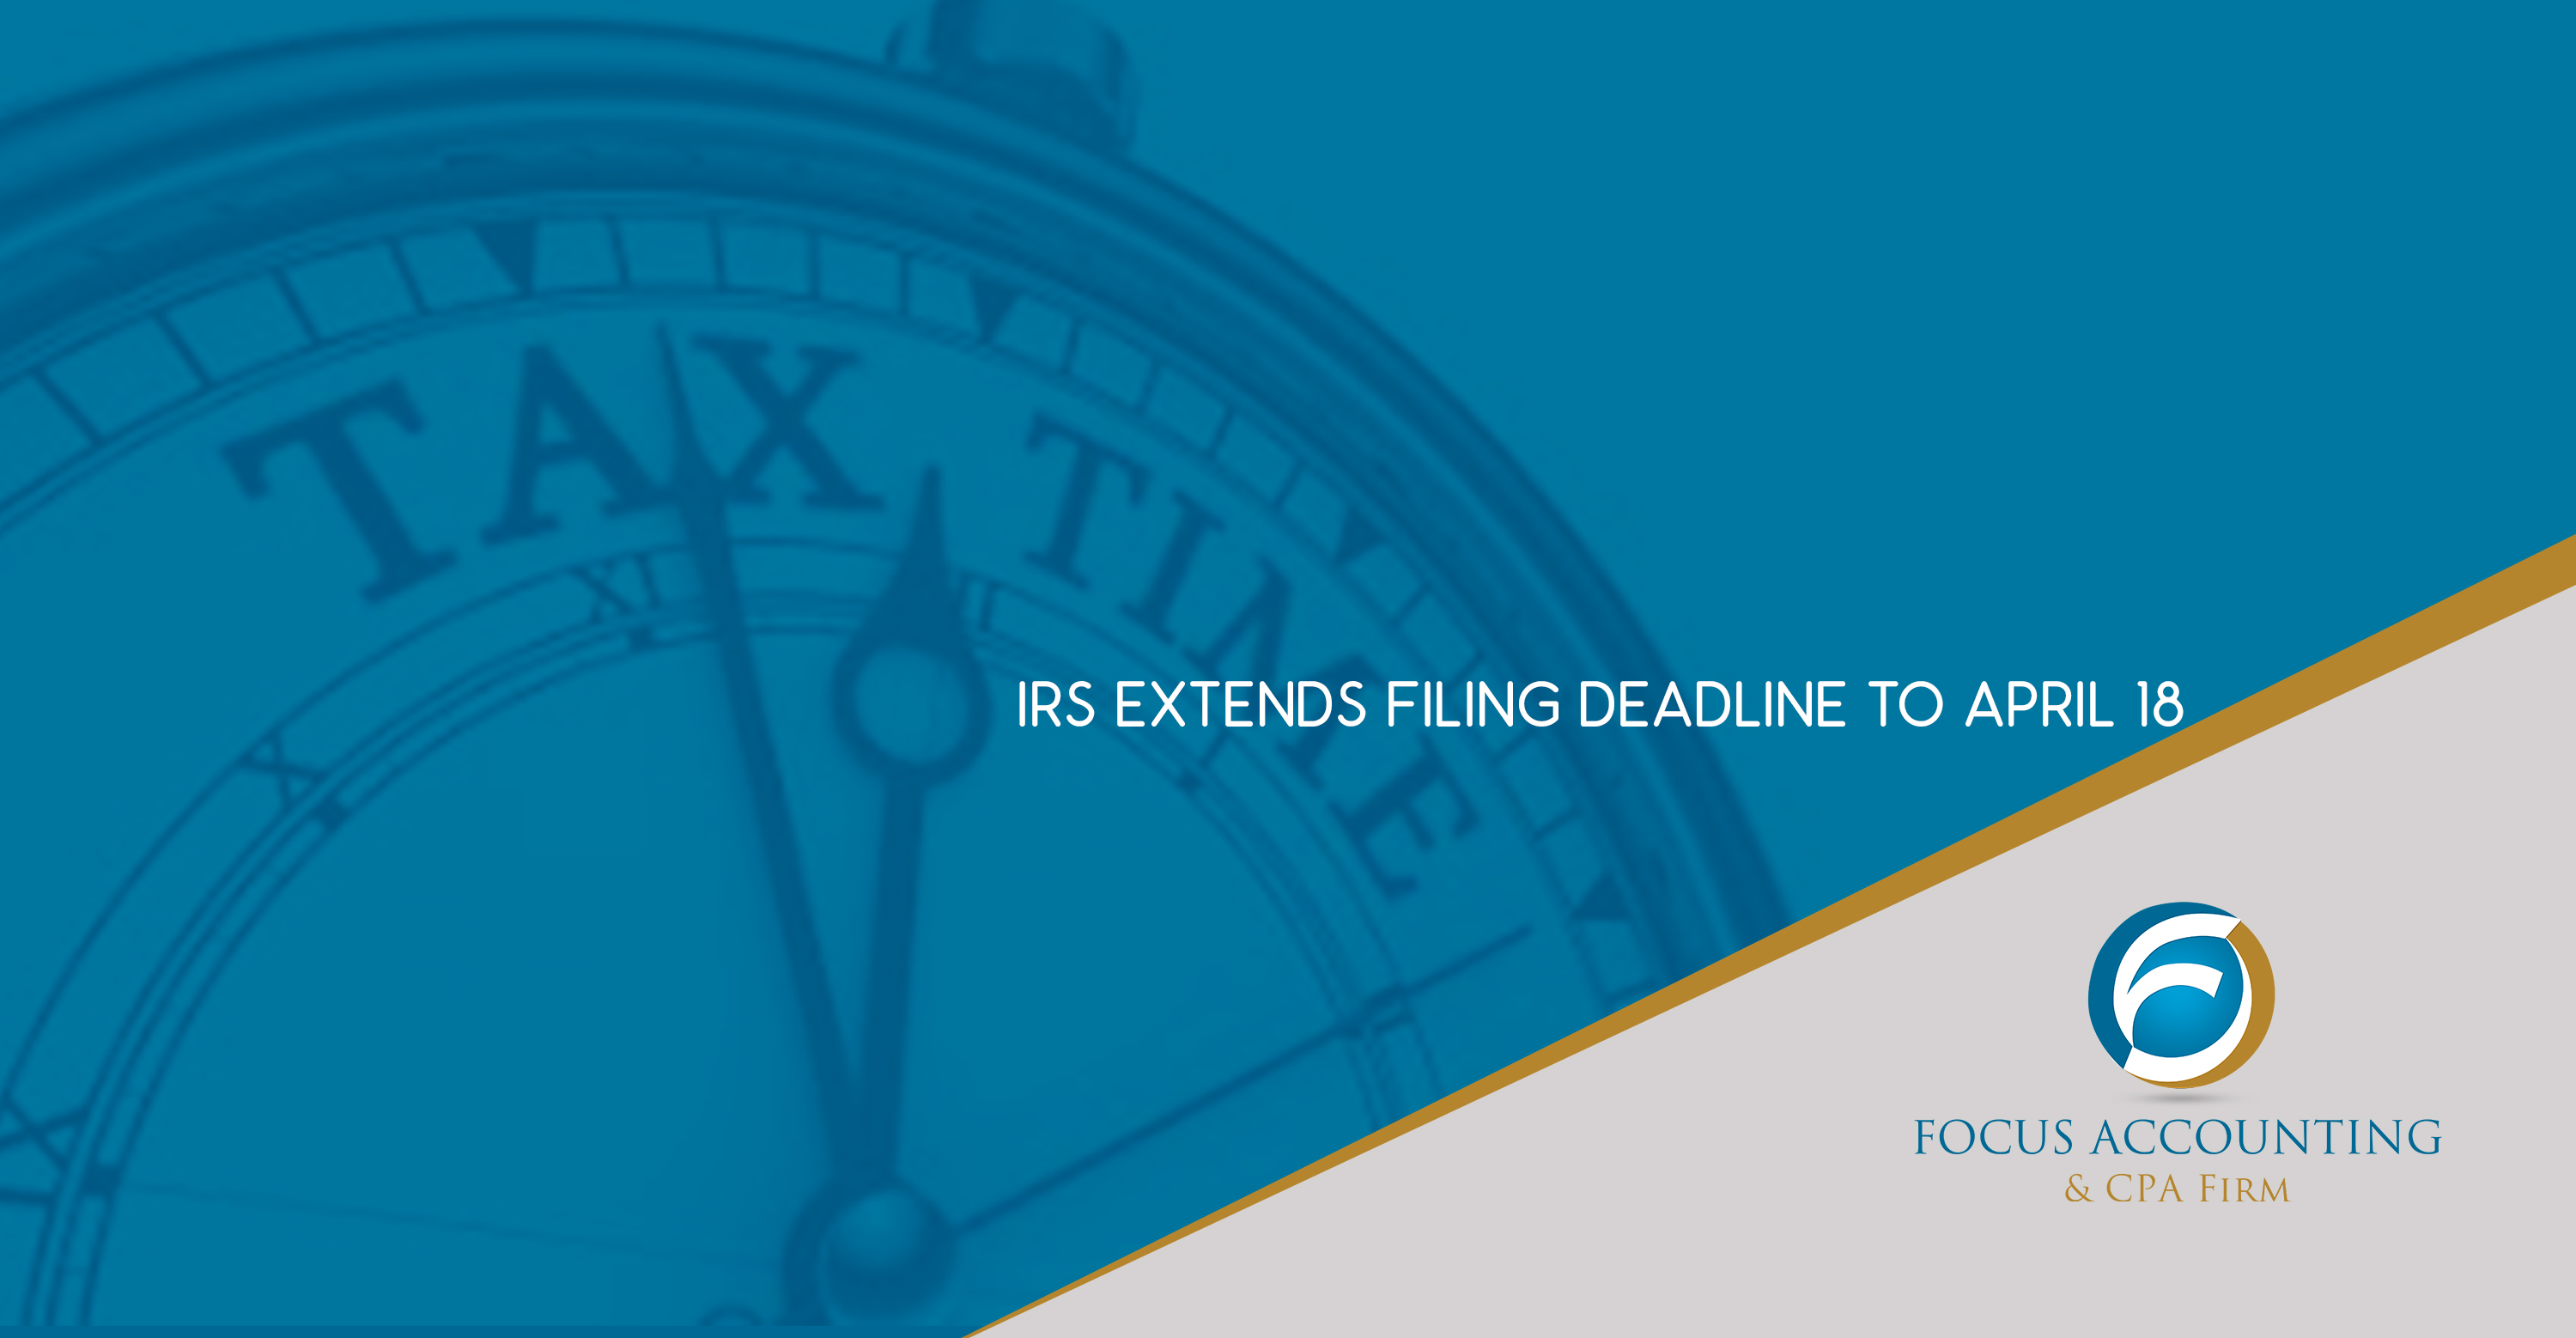 IRS Extends Filing Deadline to April 18